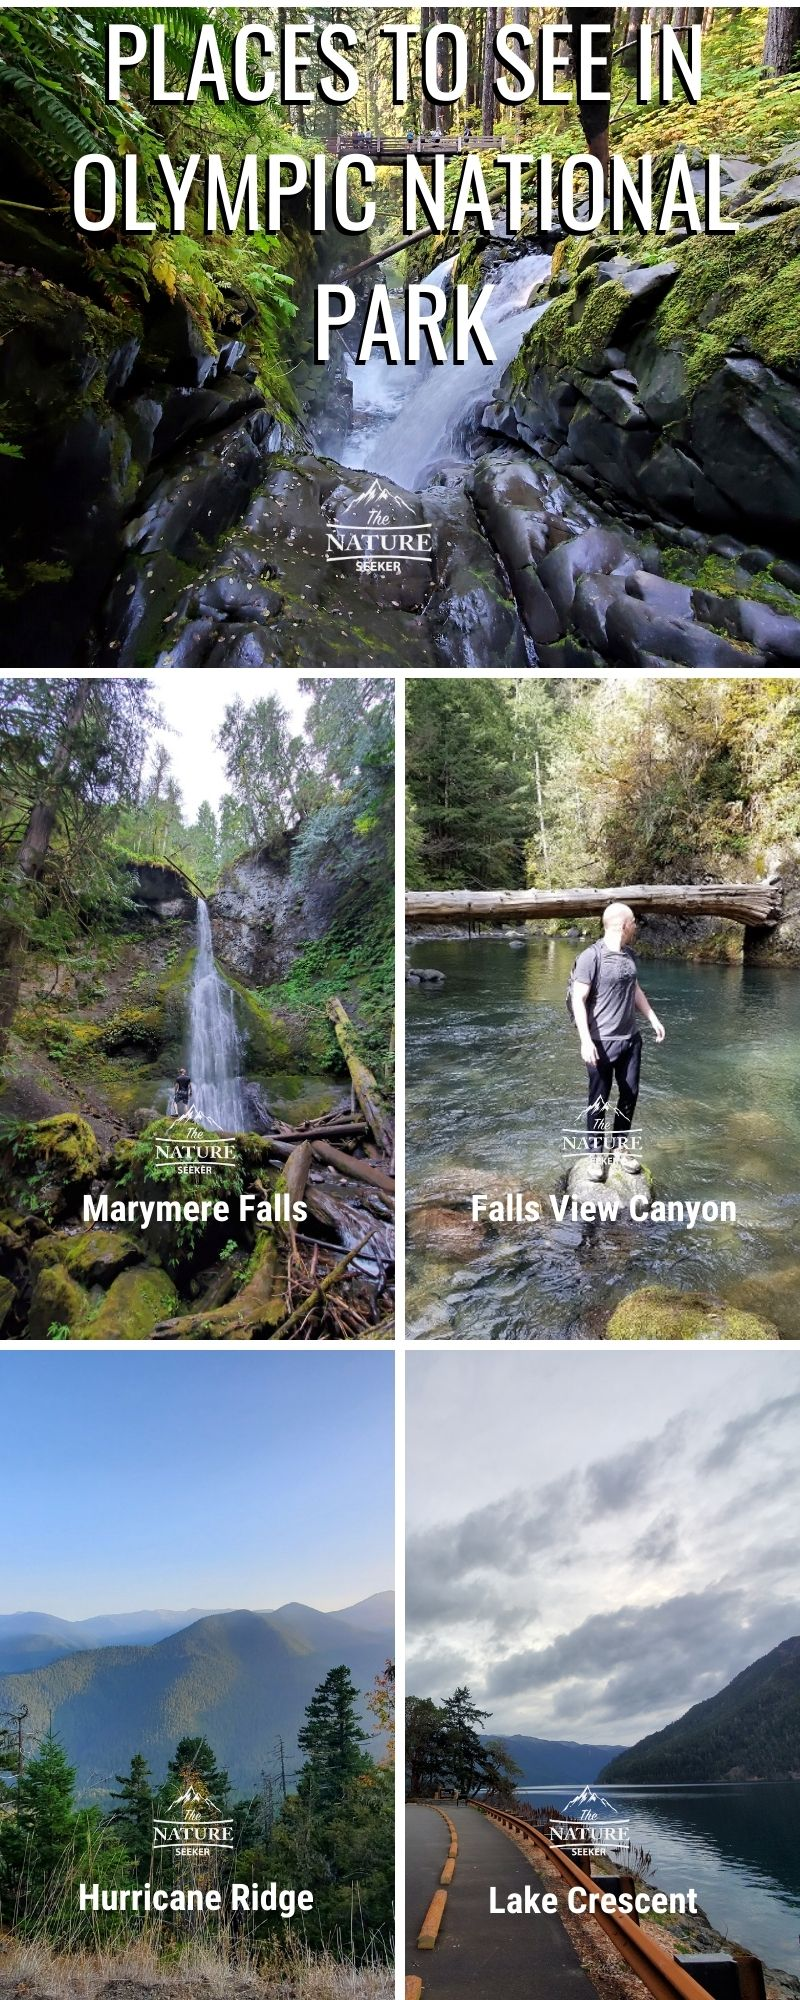 places to see in olympic national park infographic